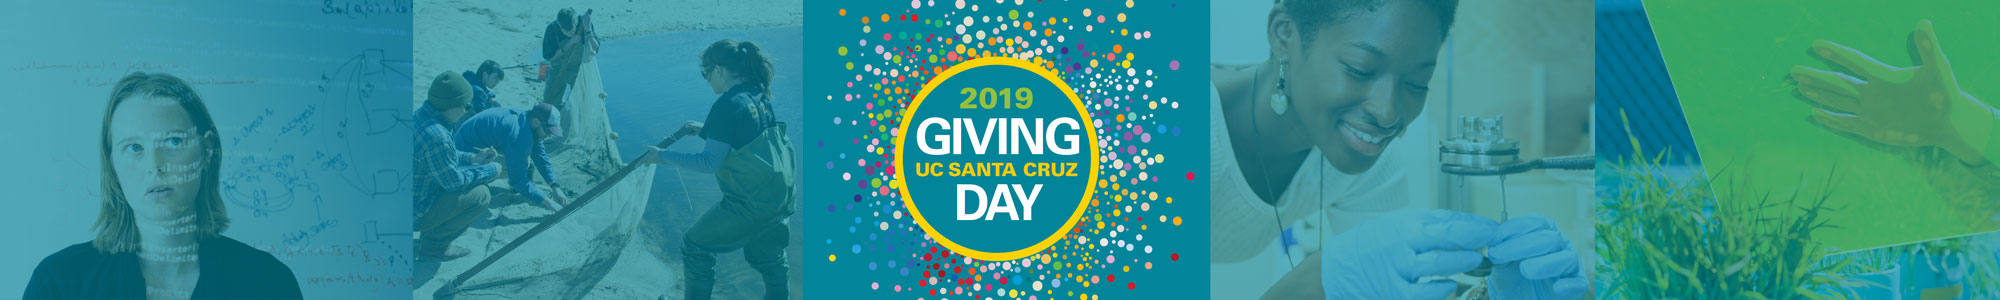 Giving day 2019 banner